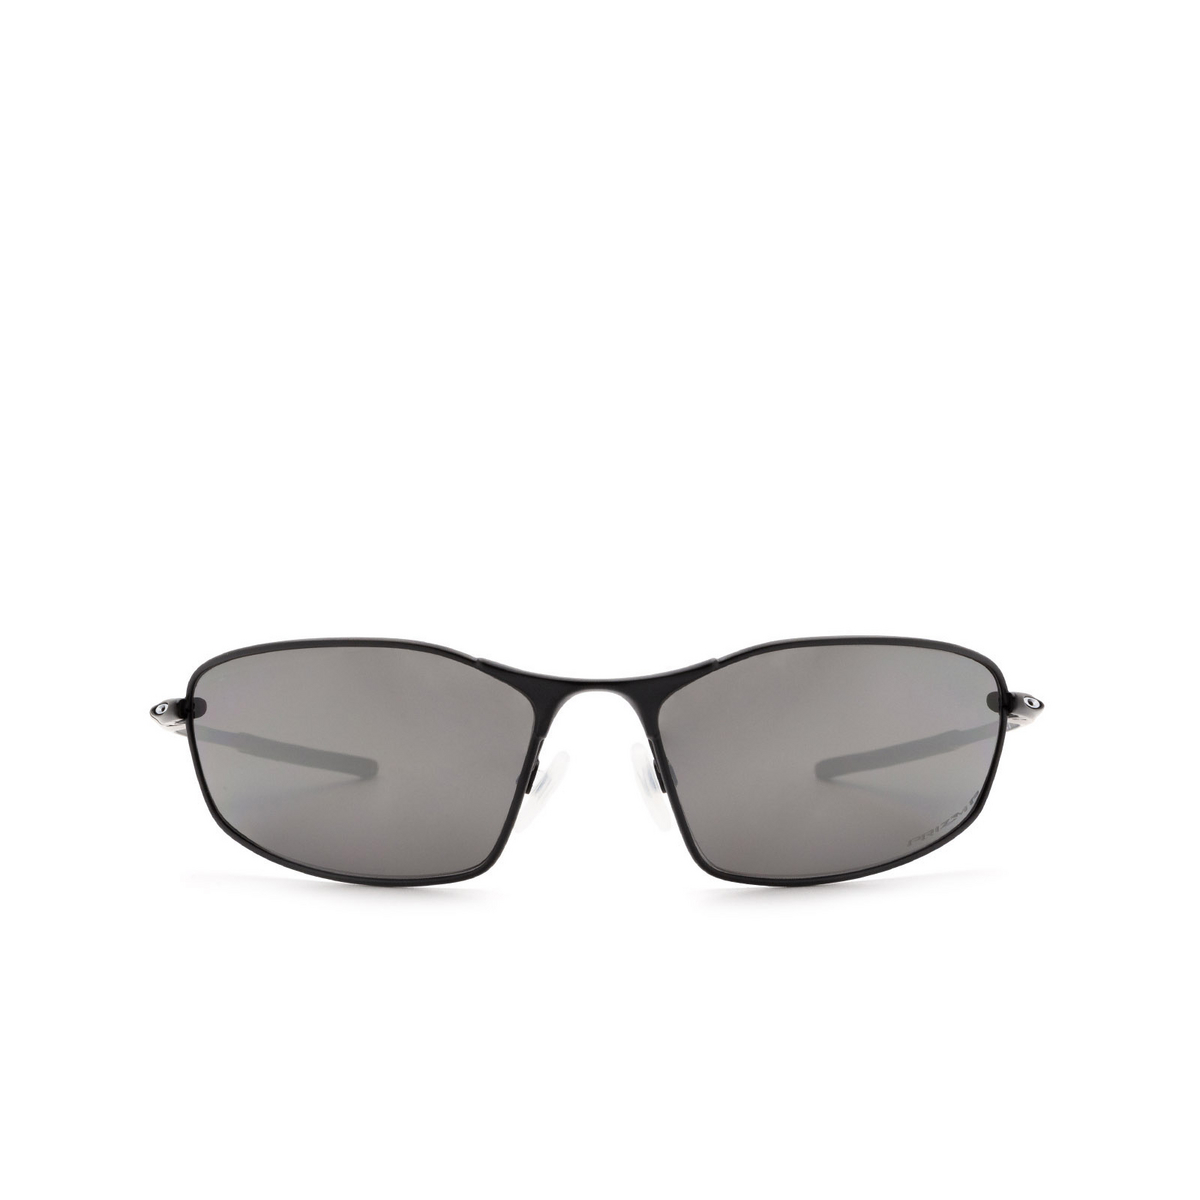 Oakley® Oval Sunglasses: Whisker OO4141 color Carbon 414101 - front view.